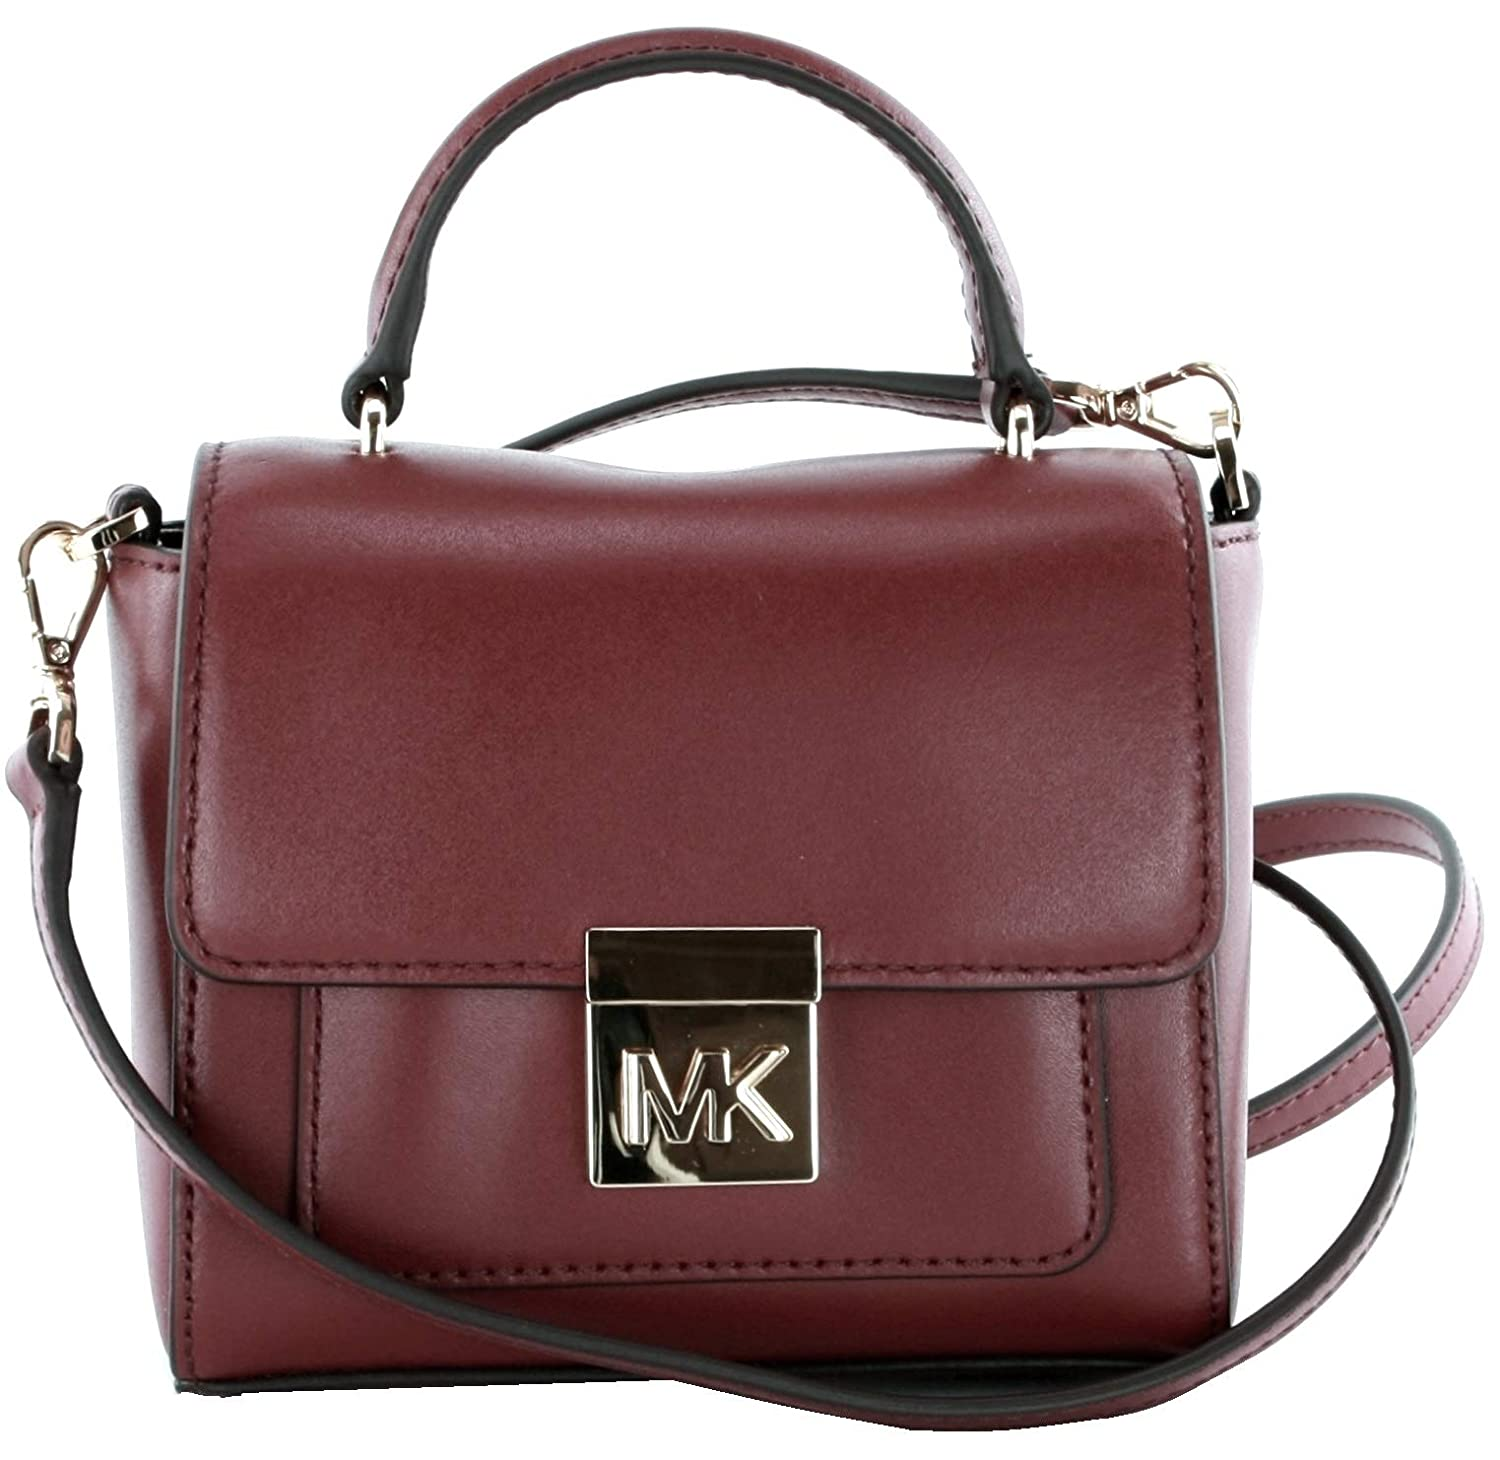 7d2c2ca6075746 Michael Kors Mindy Leather Crossbody Bag Small Handbag Mulberry Red RRP  £210 (Small, Mulberry): Amazon.co.uk: Shoes & Bags